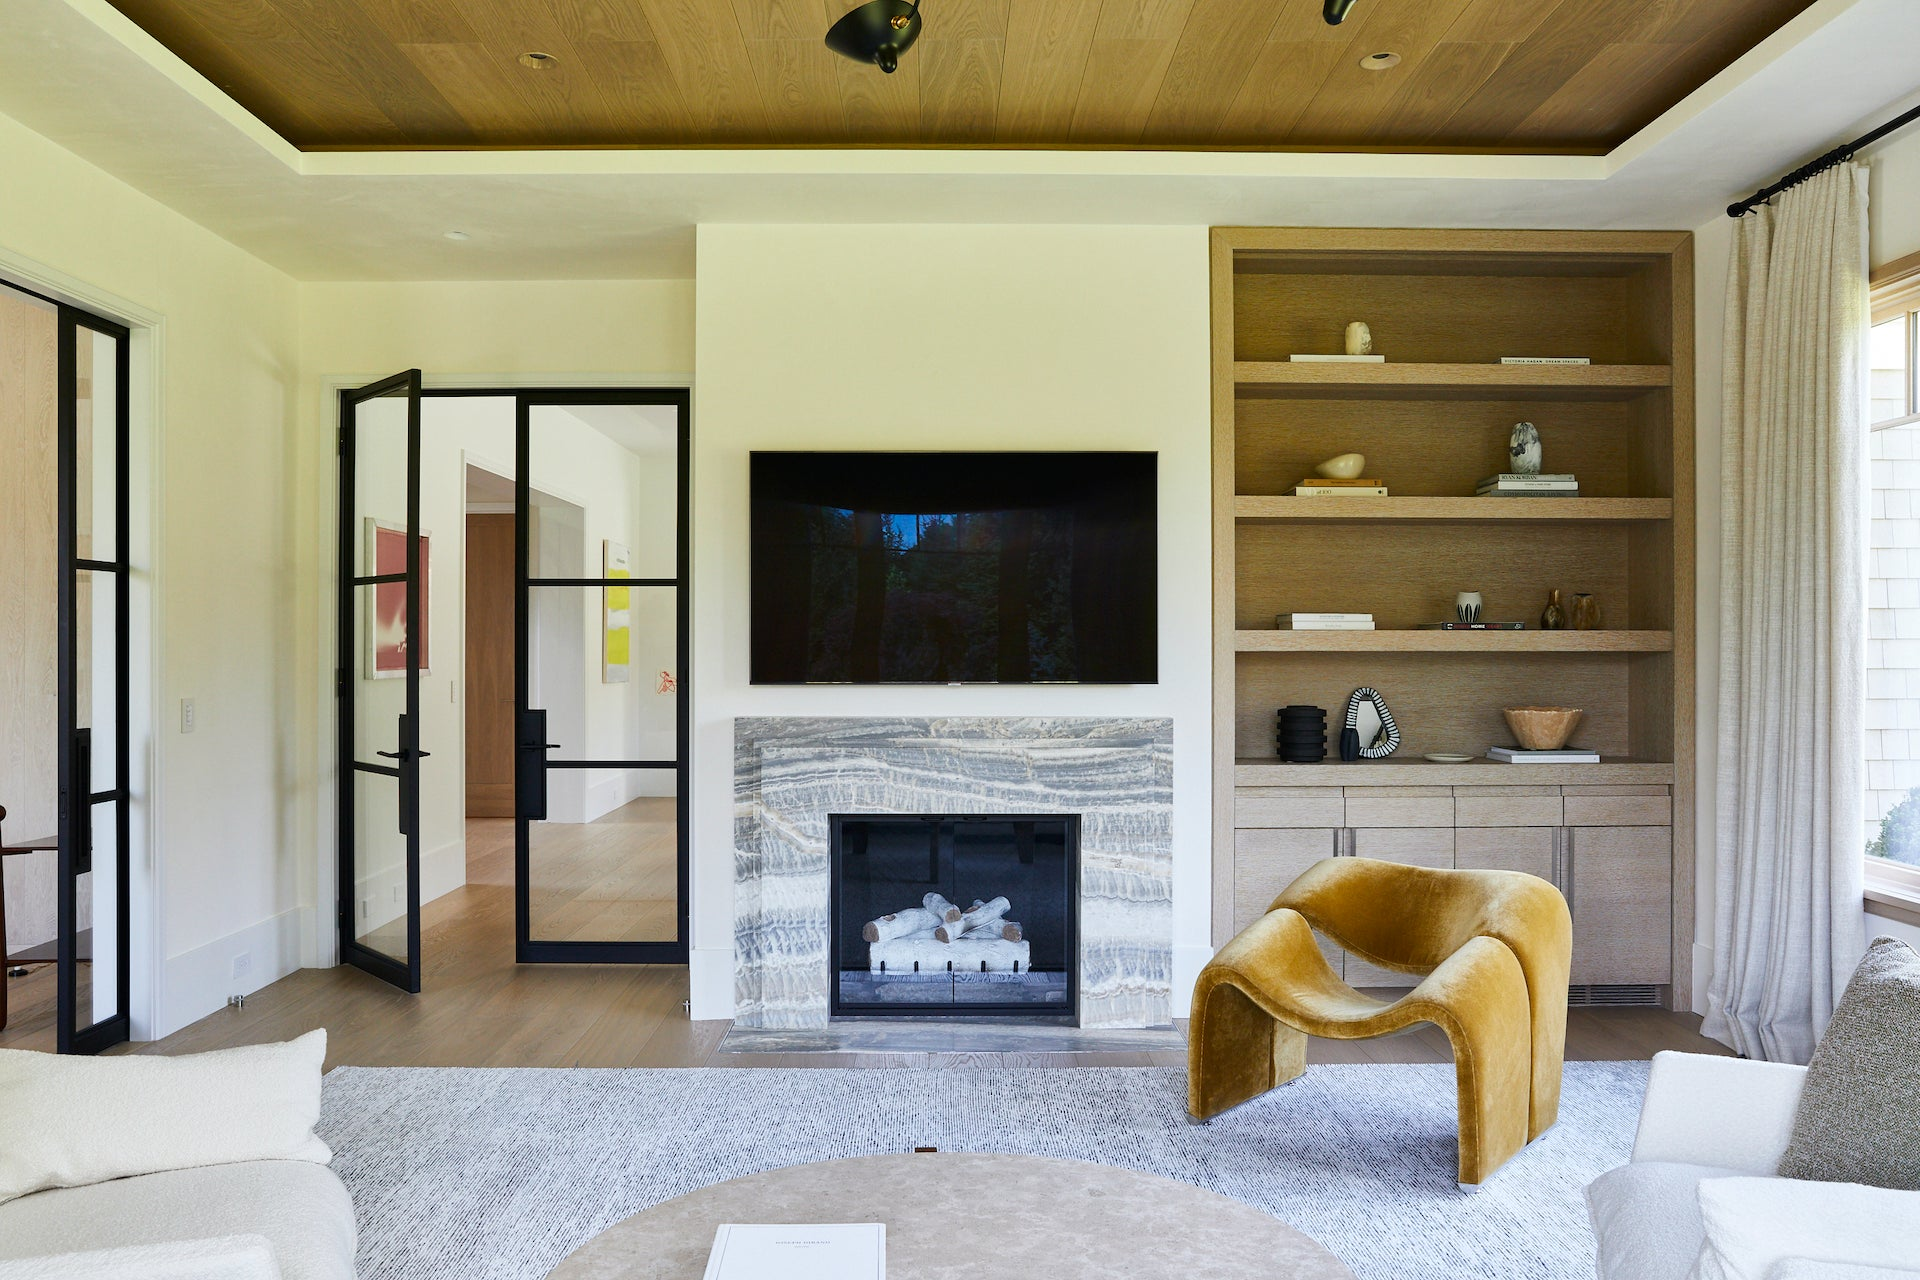 Alpine Road Project by Ingrao, Inc. Photo ©Genevieve Garruppo